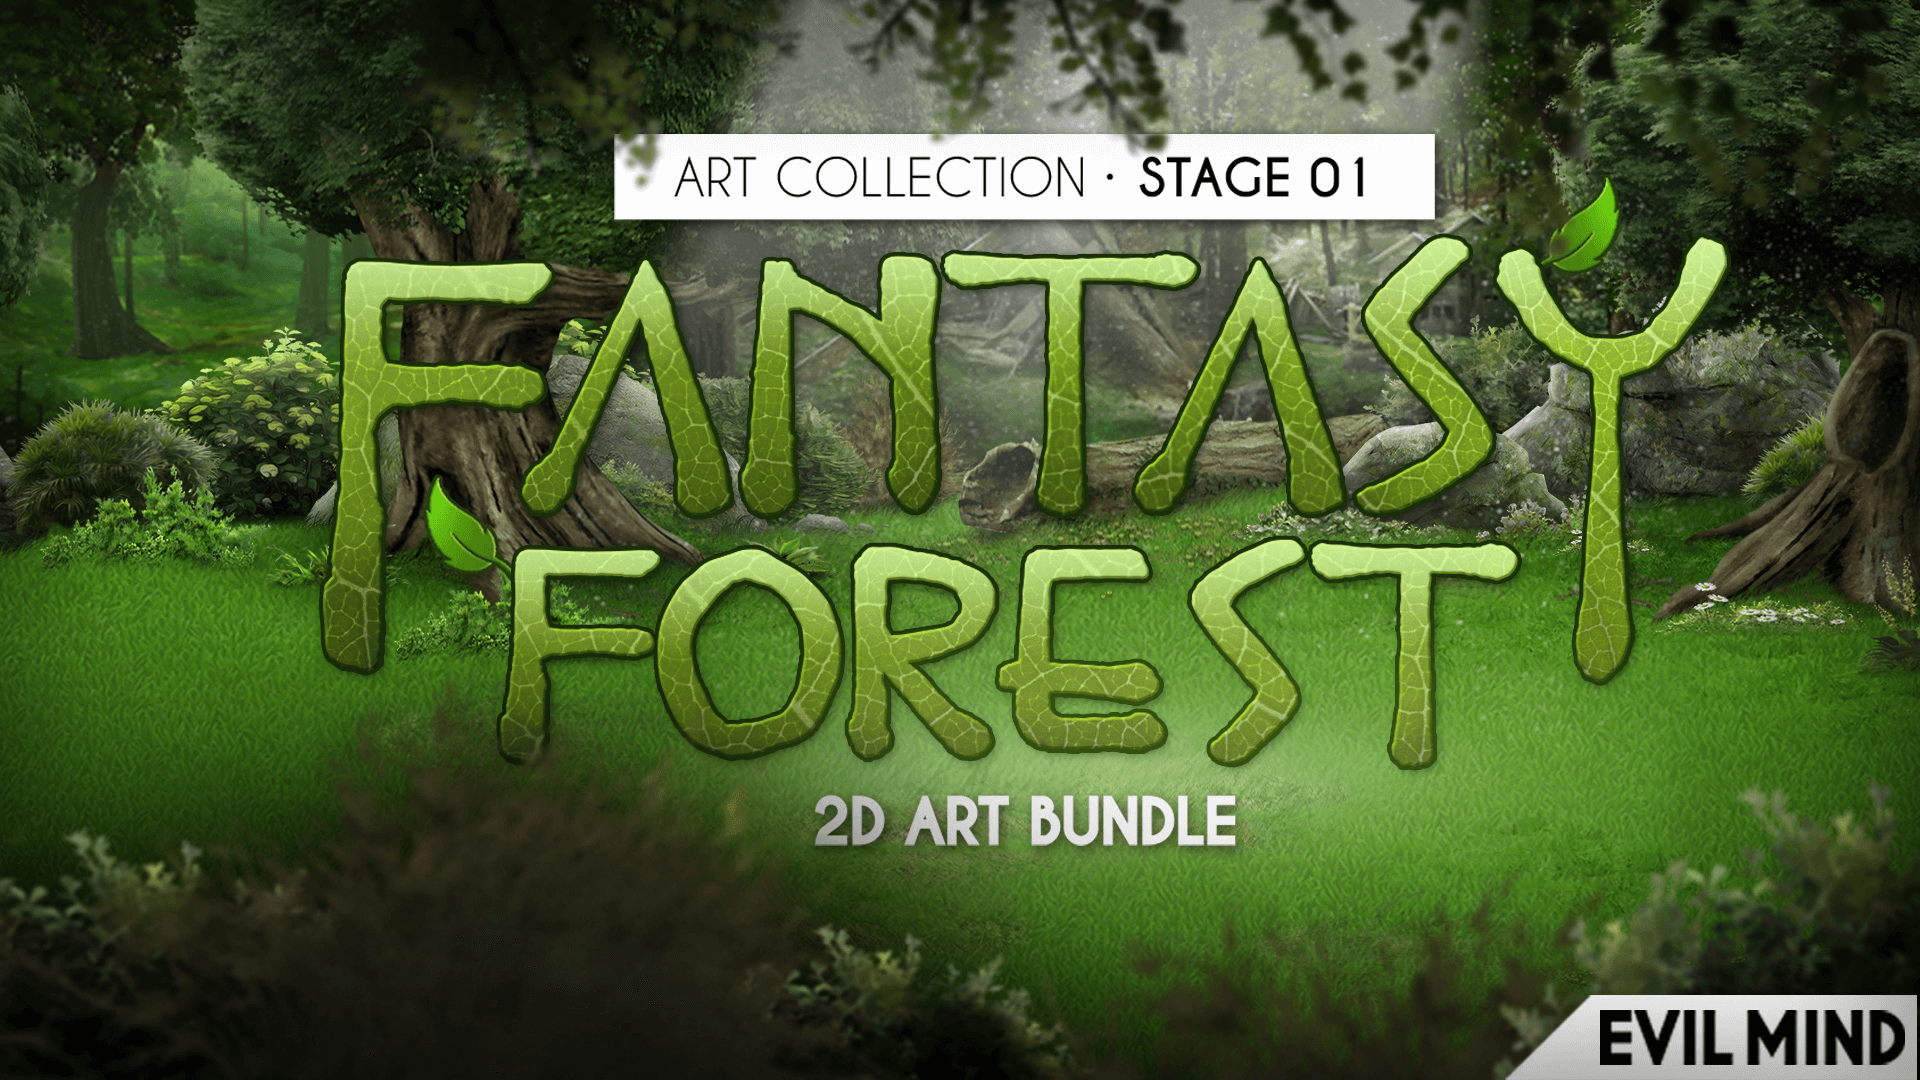 Fantasy Forest 2D Art Bundle by Evil Mind in 2D Assets - UE4